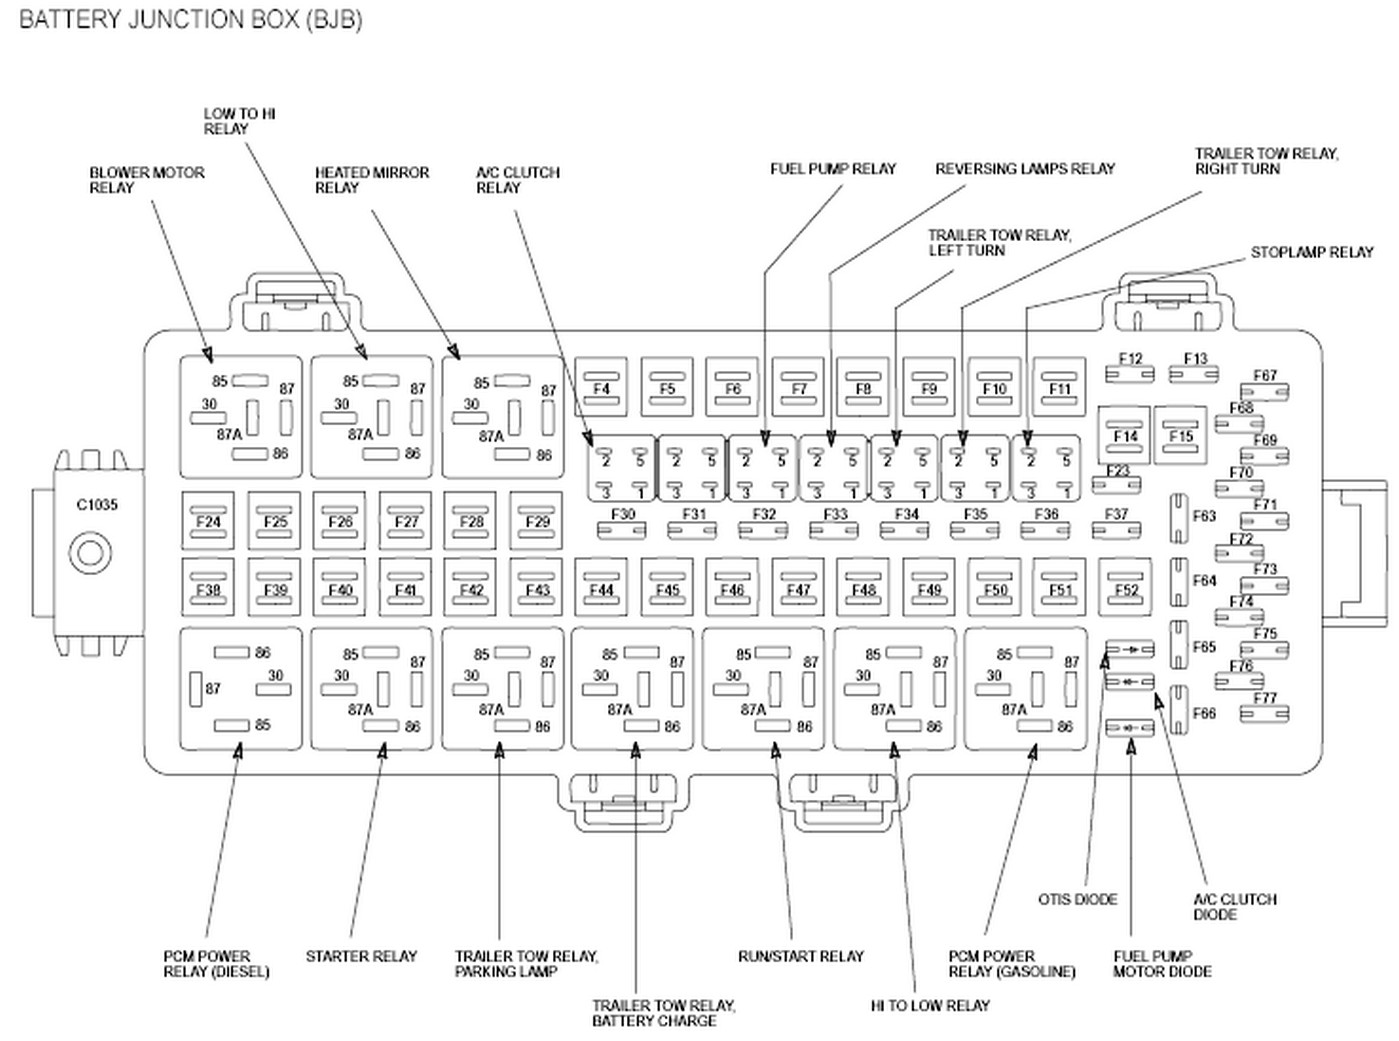 2011 ford f250 fuse box diagram Zoinyhu 2012 f250 fuse box location 2009 ford fusion fuse box diagram 2012 ford f250 fuse box location at soozxer.org